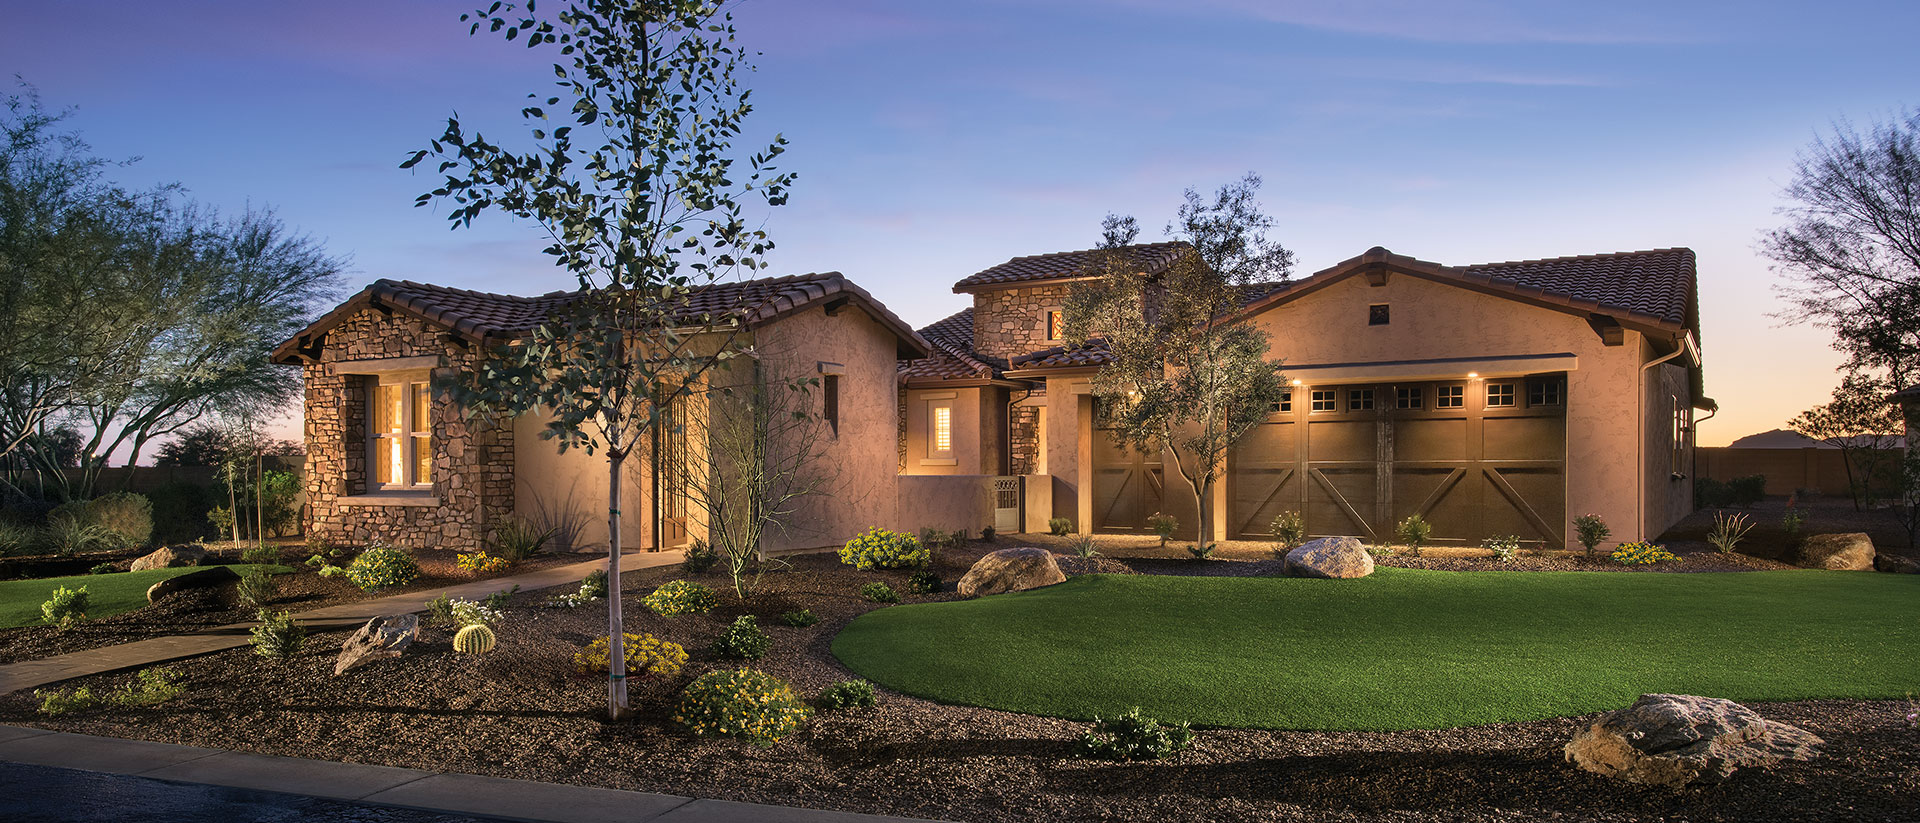 PEBBLE CREEK - PREMIERE SERIES HOMES